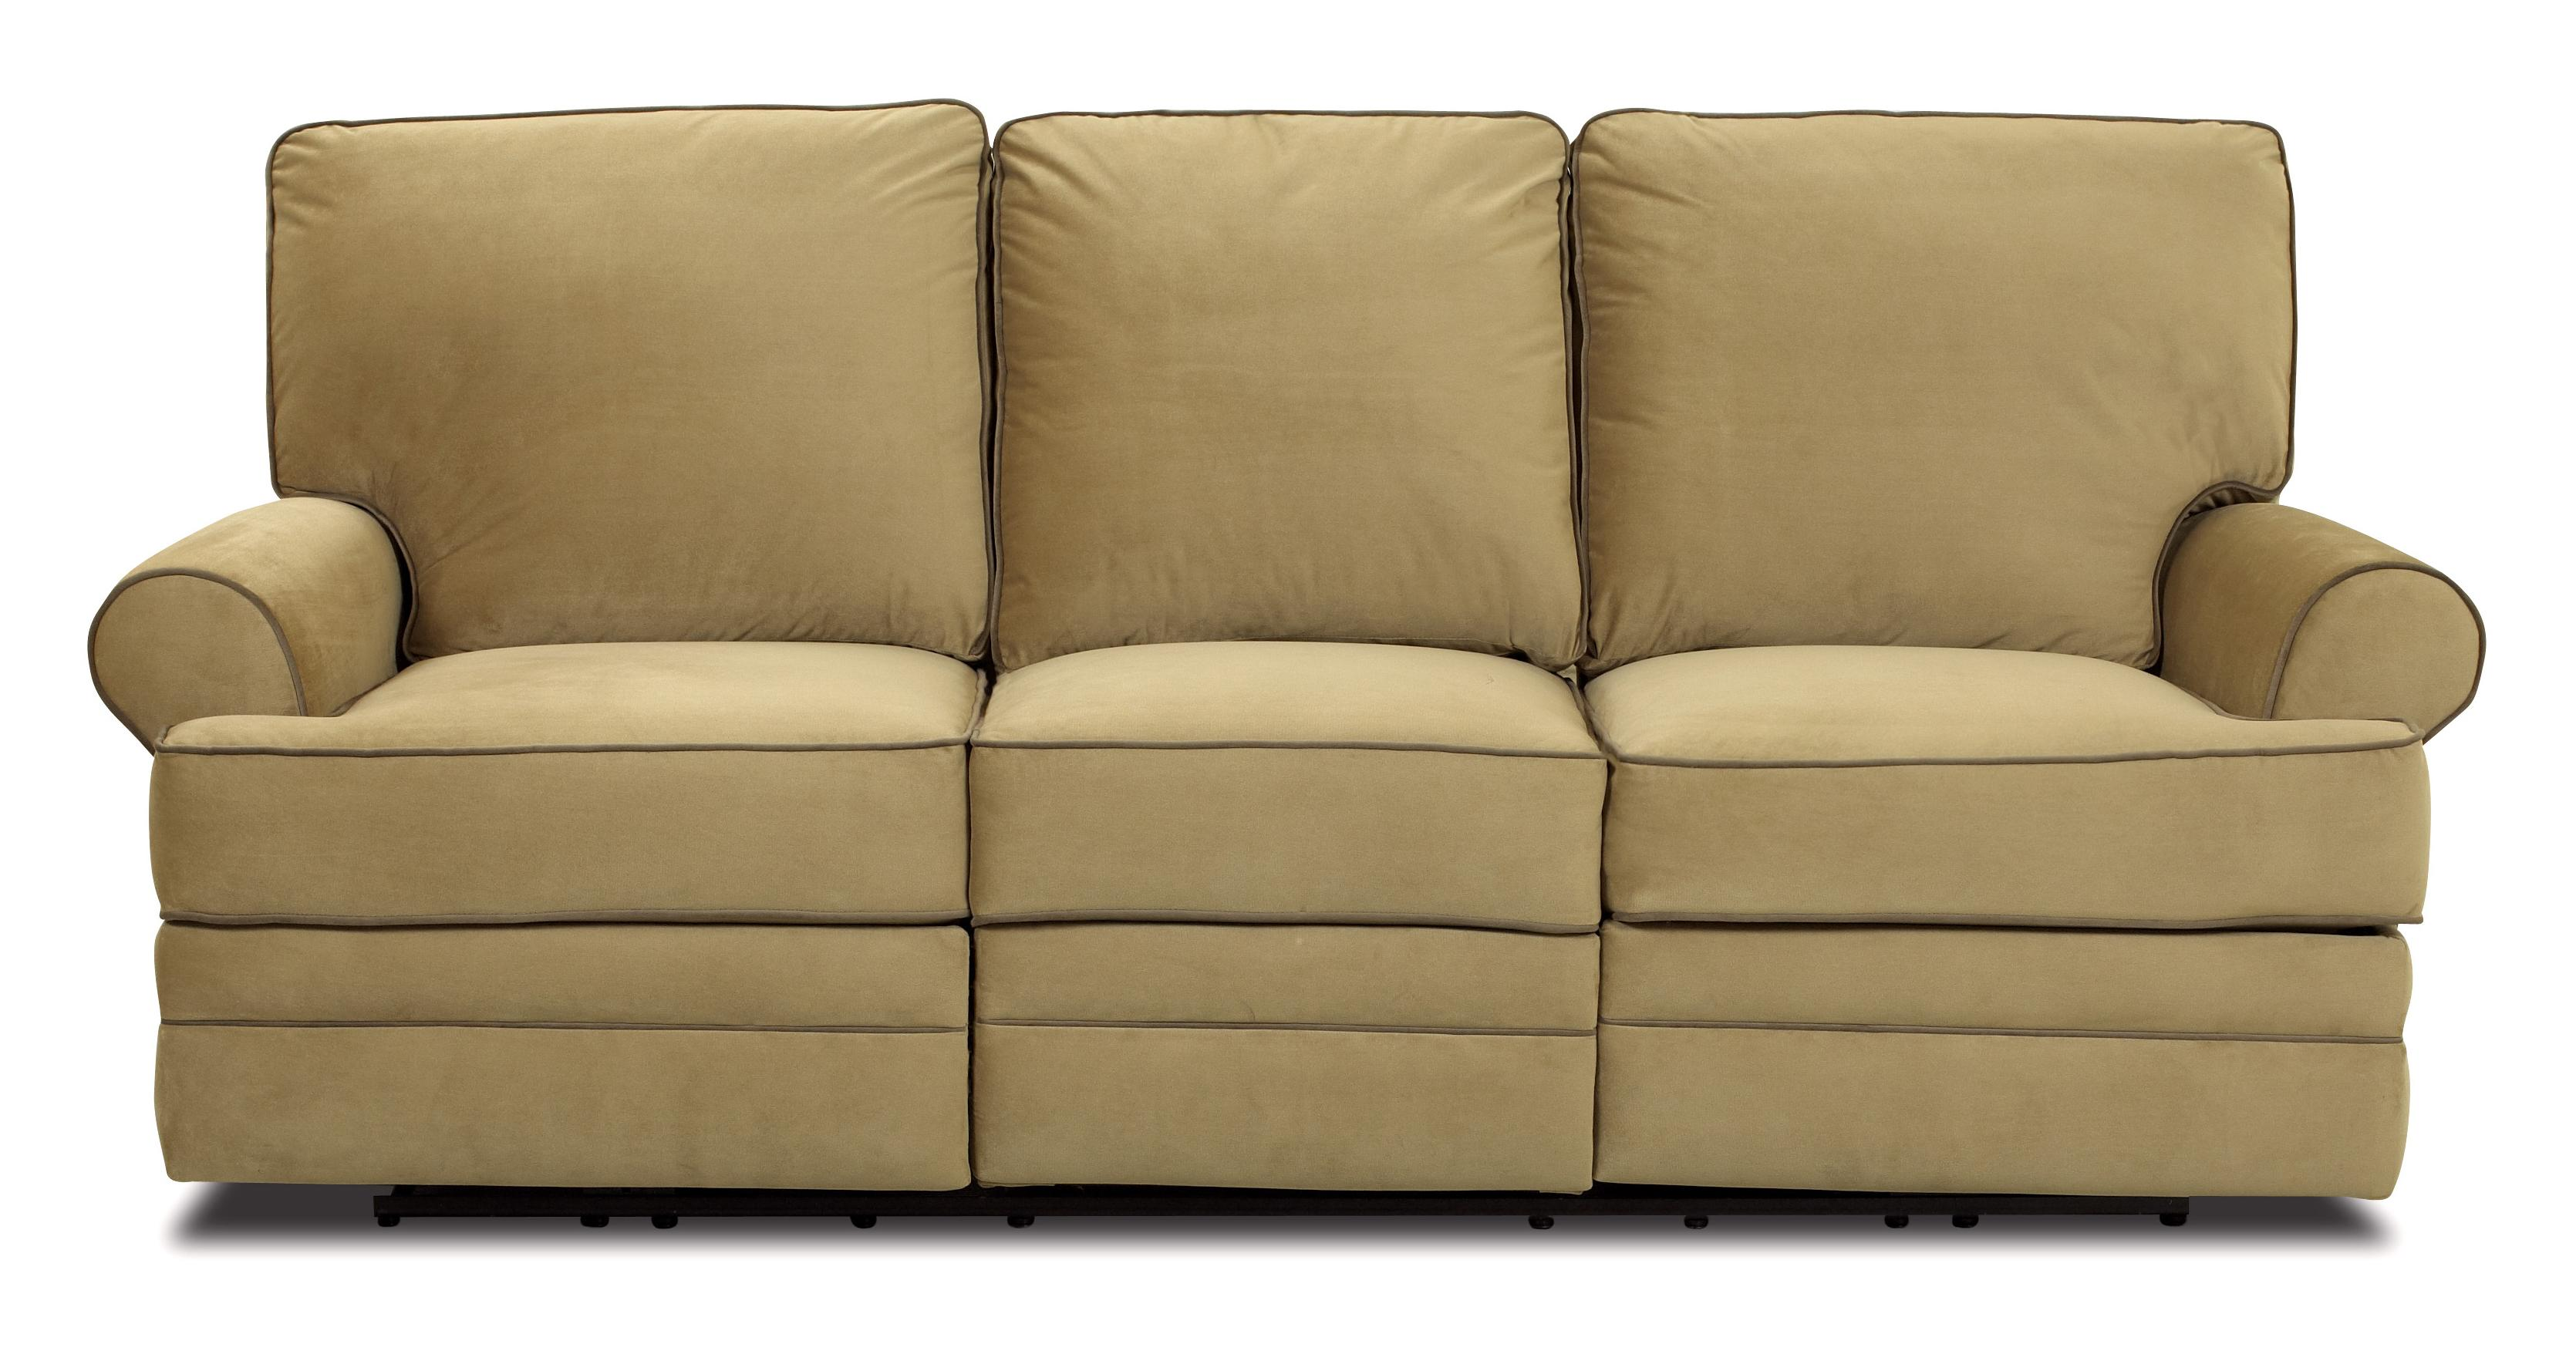 Power Dual Reclining Sofa By Klaussner Wolf Furniture